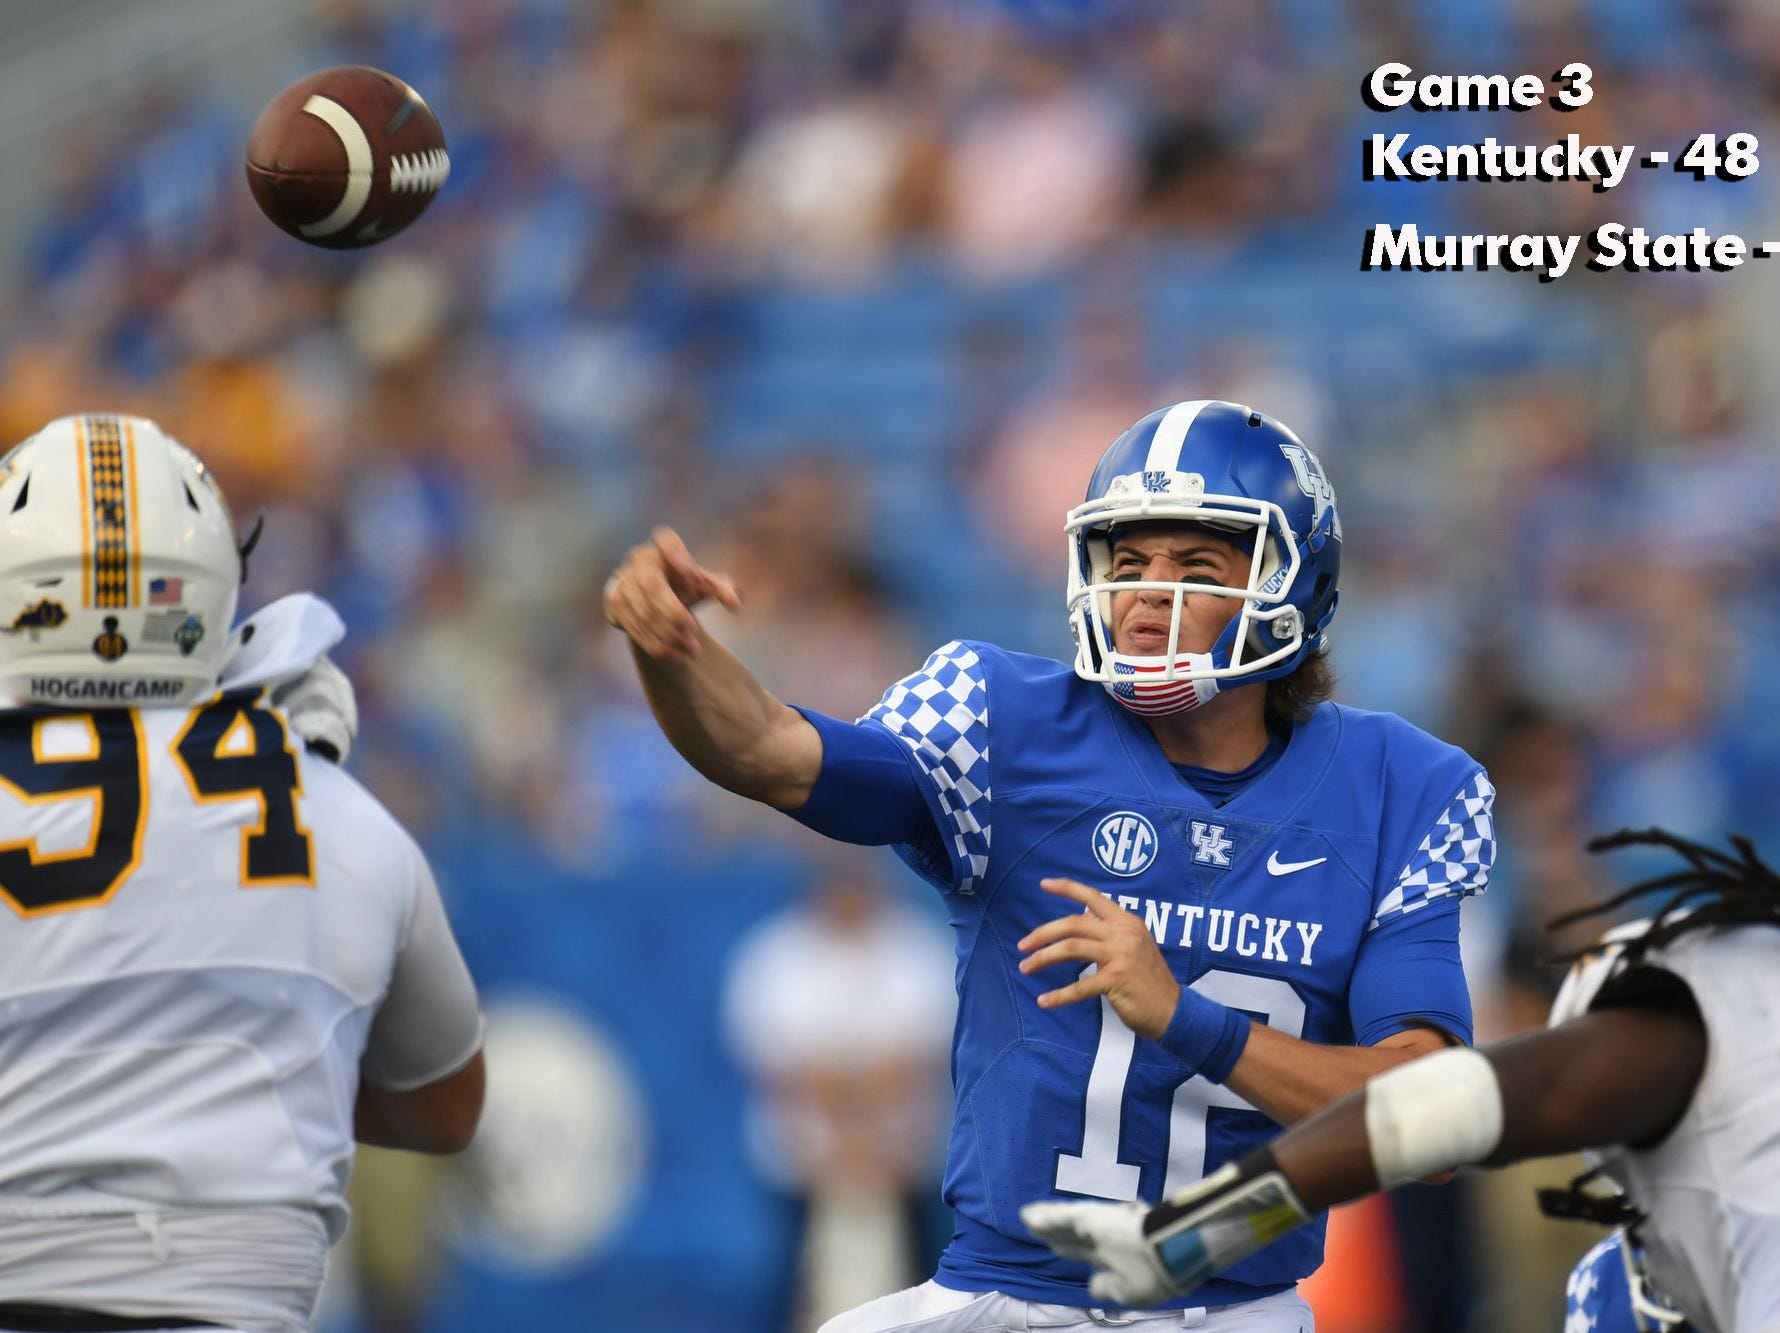 UK quarterback Gunnar Hoak throws a touchdown during the University of Kentucky football game against Murray State at Kroger Field in Lexington, Kentucky, on Saturday, Sept. 15, 2018.